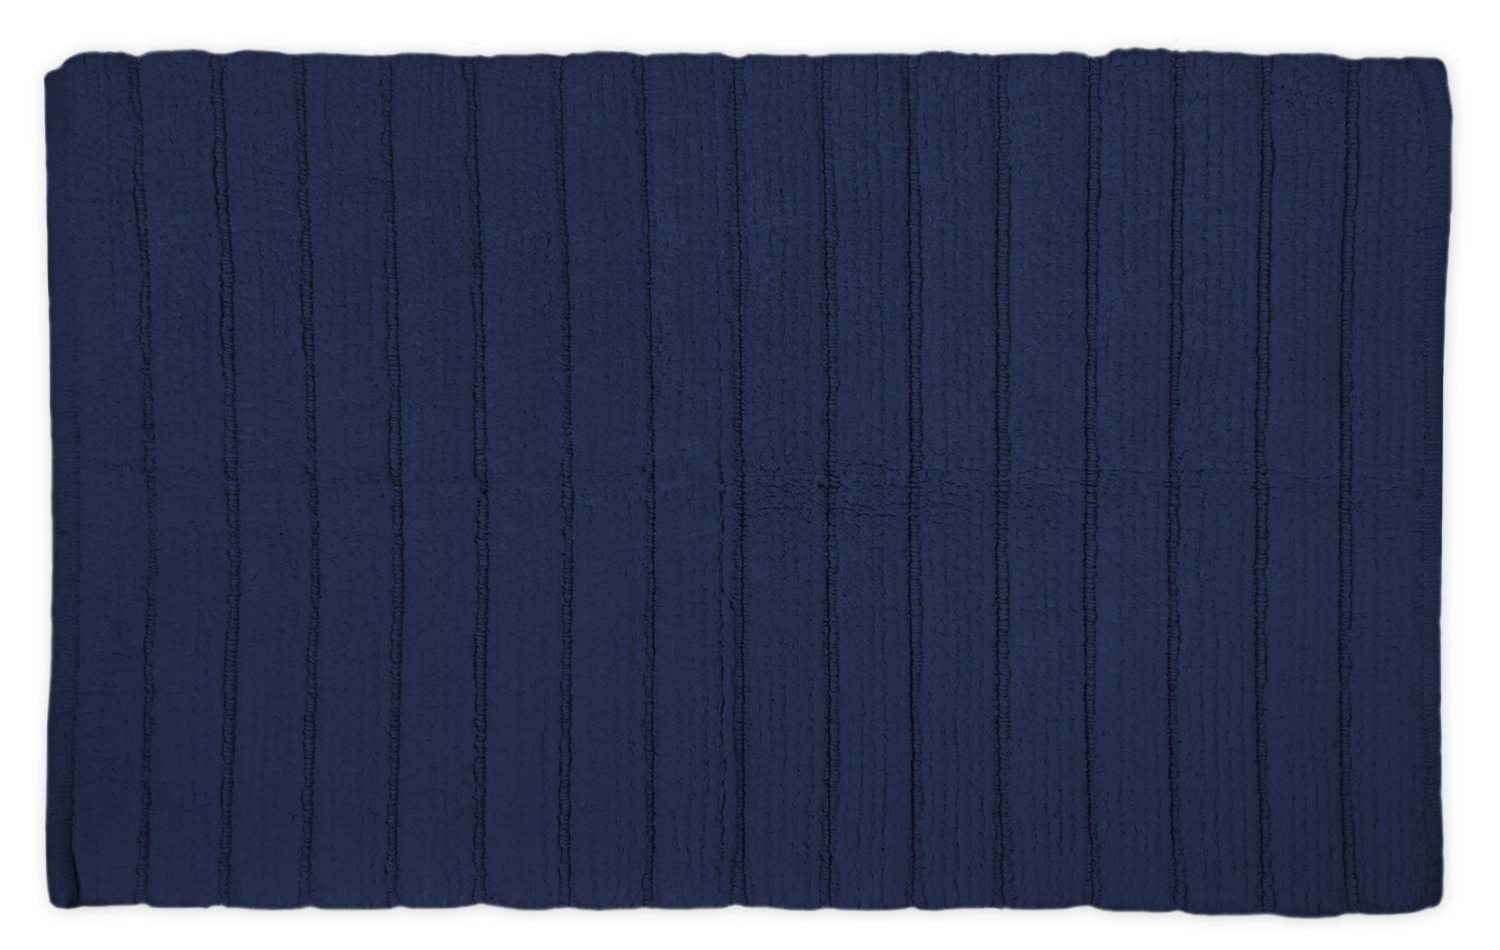 DII Cotton Ultra Absorbent Soft Luxury Spa Ribbed Bath Mat or Rug Place in Front of Shower, Vanity, Bath Tub, Sink, and Toilet 21x34 Navy